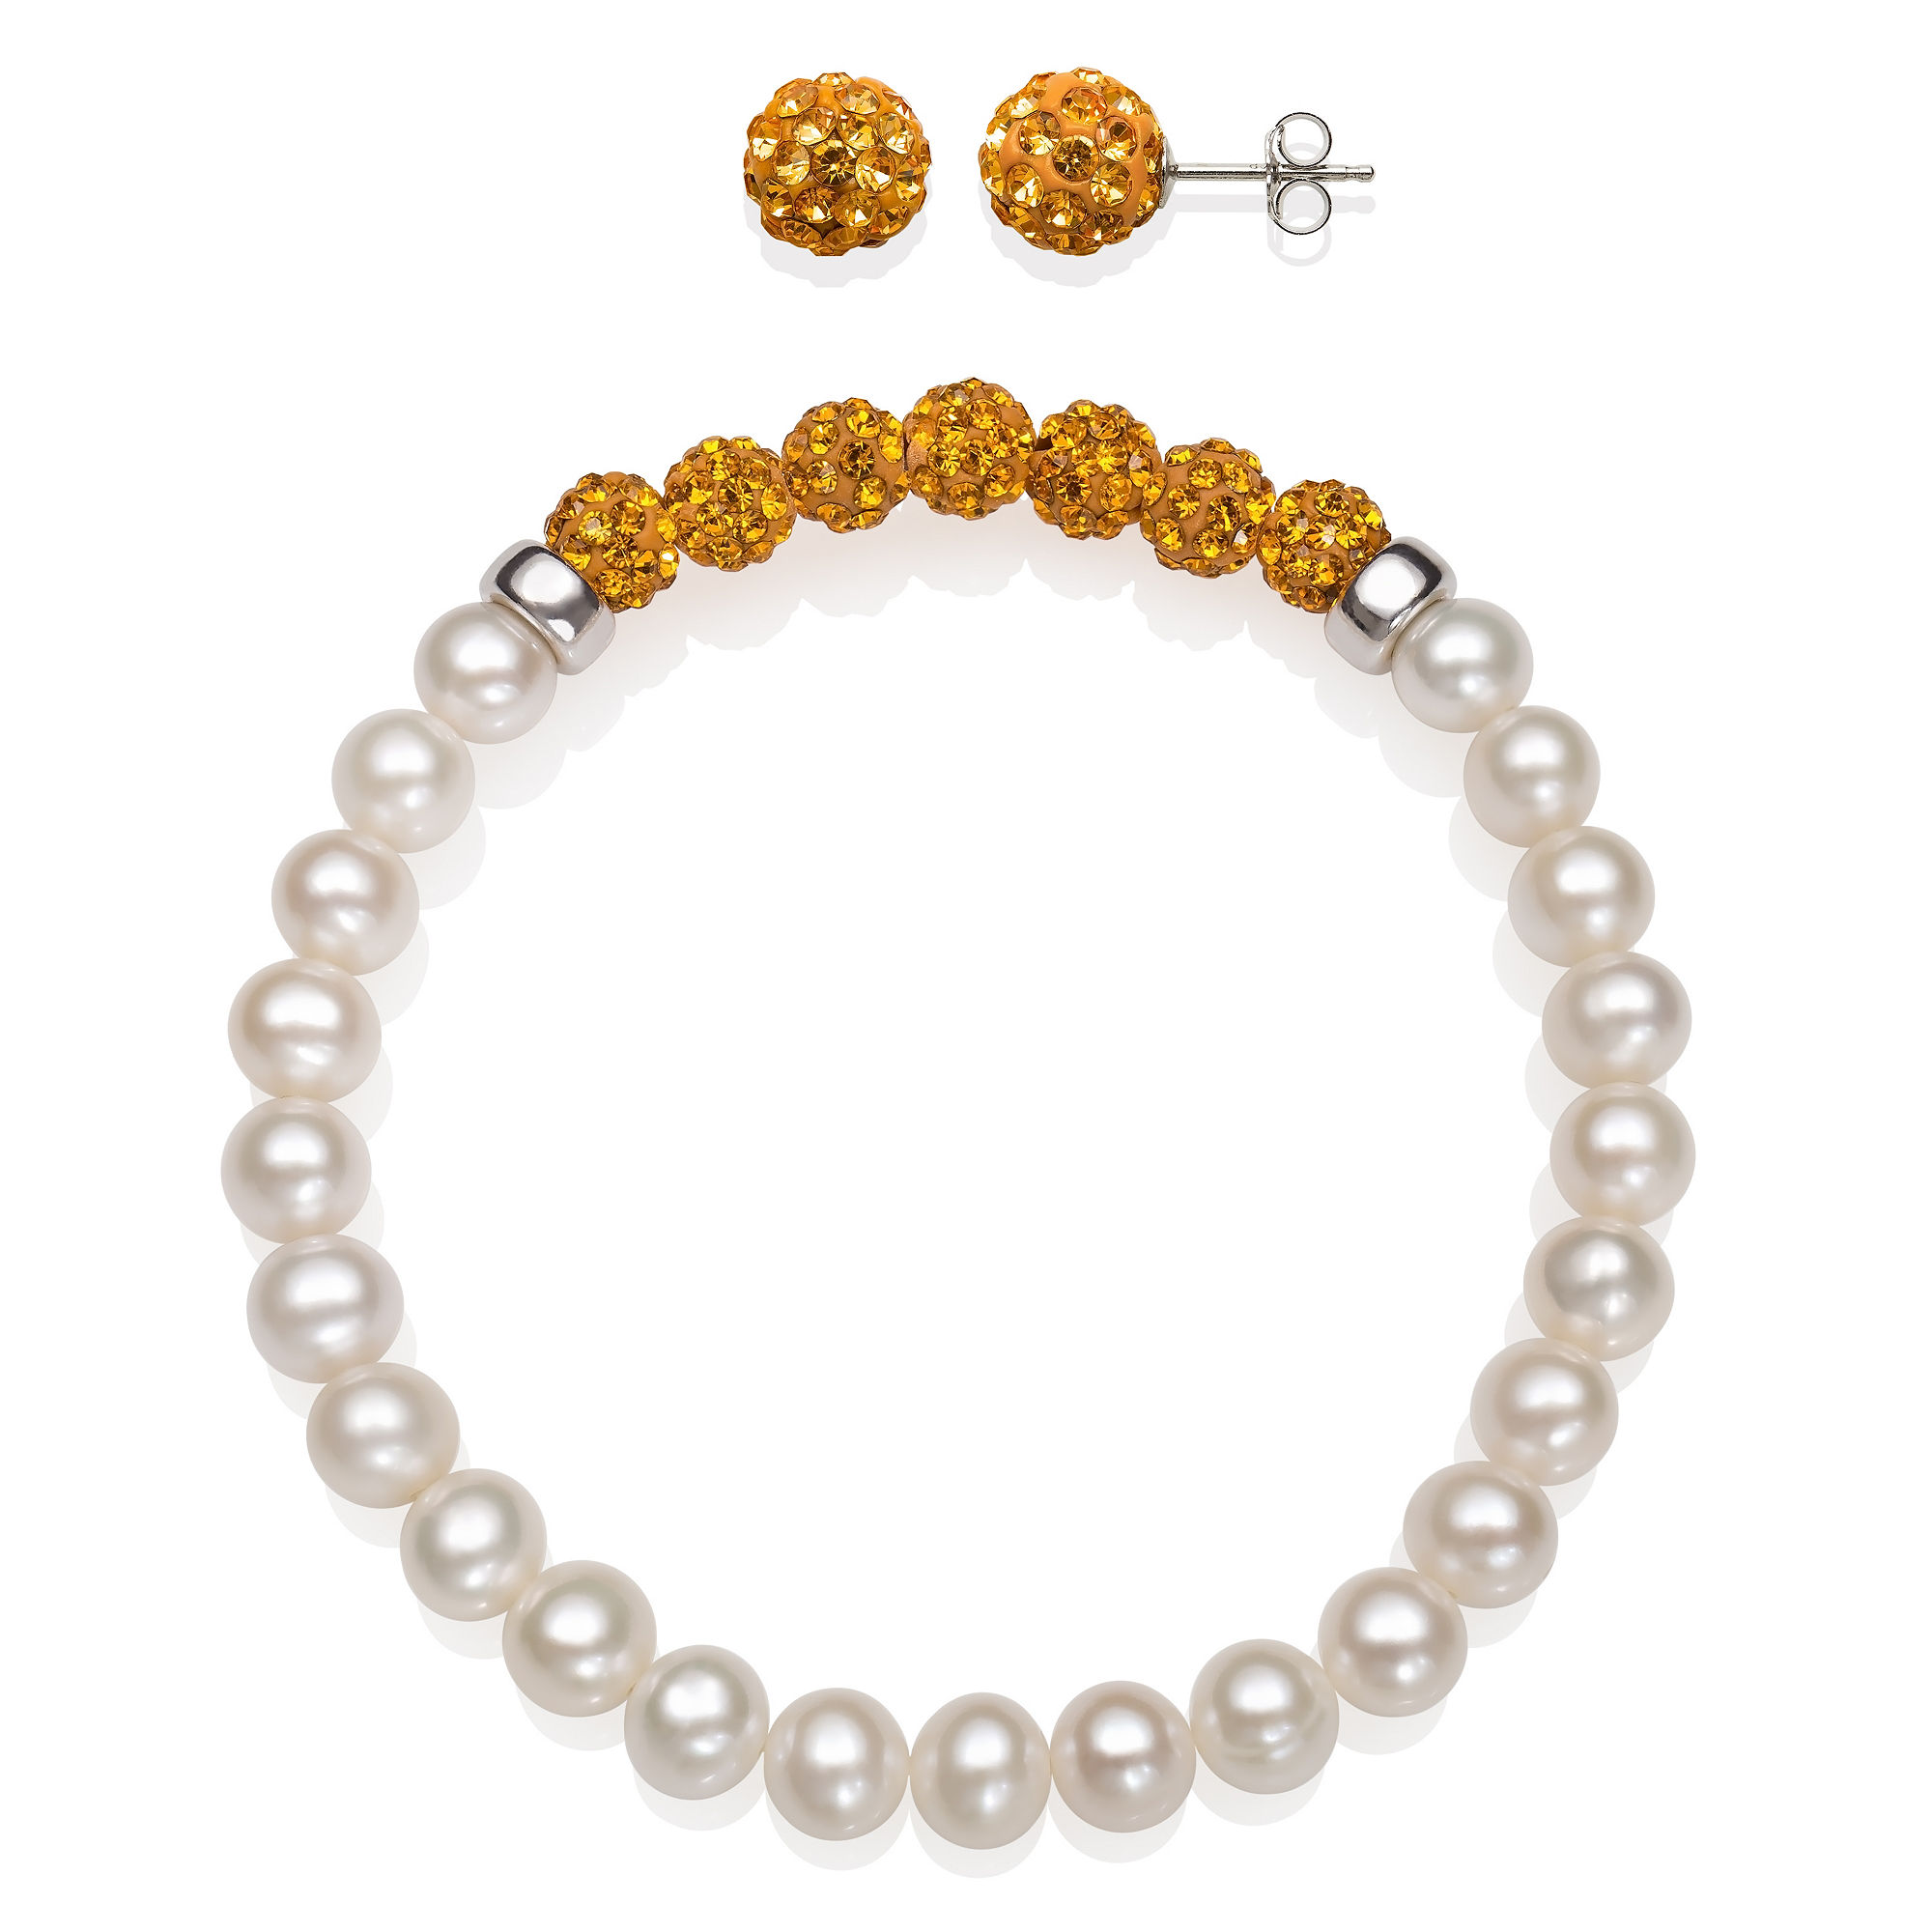 6-7Mm Cultured Freshwater Pearl And 6Mm Orange Lab Created Crystal Bead Sterling Silver Earring And Bracelet Set